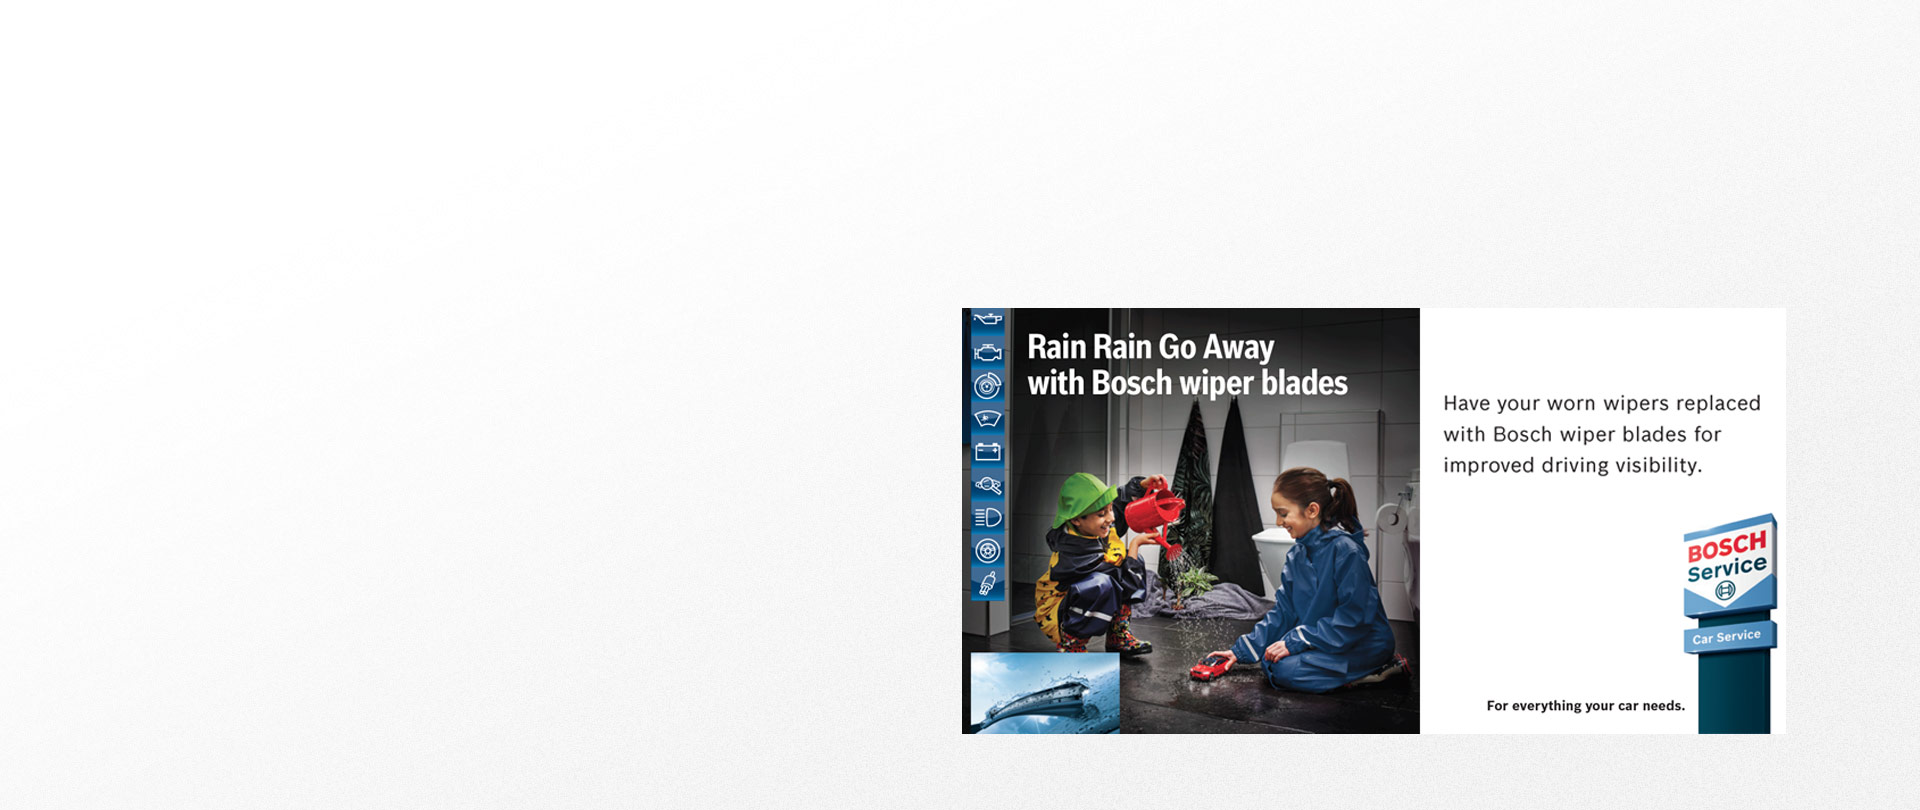 Be ready for winter rain with BOSCH wiper blades